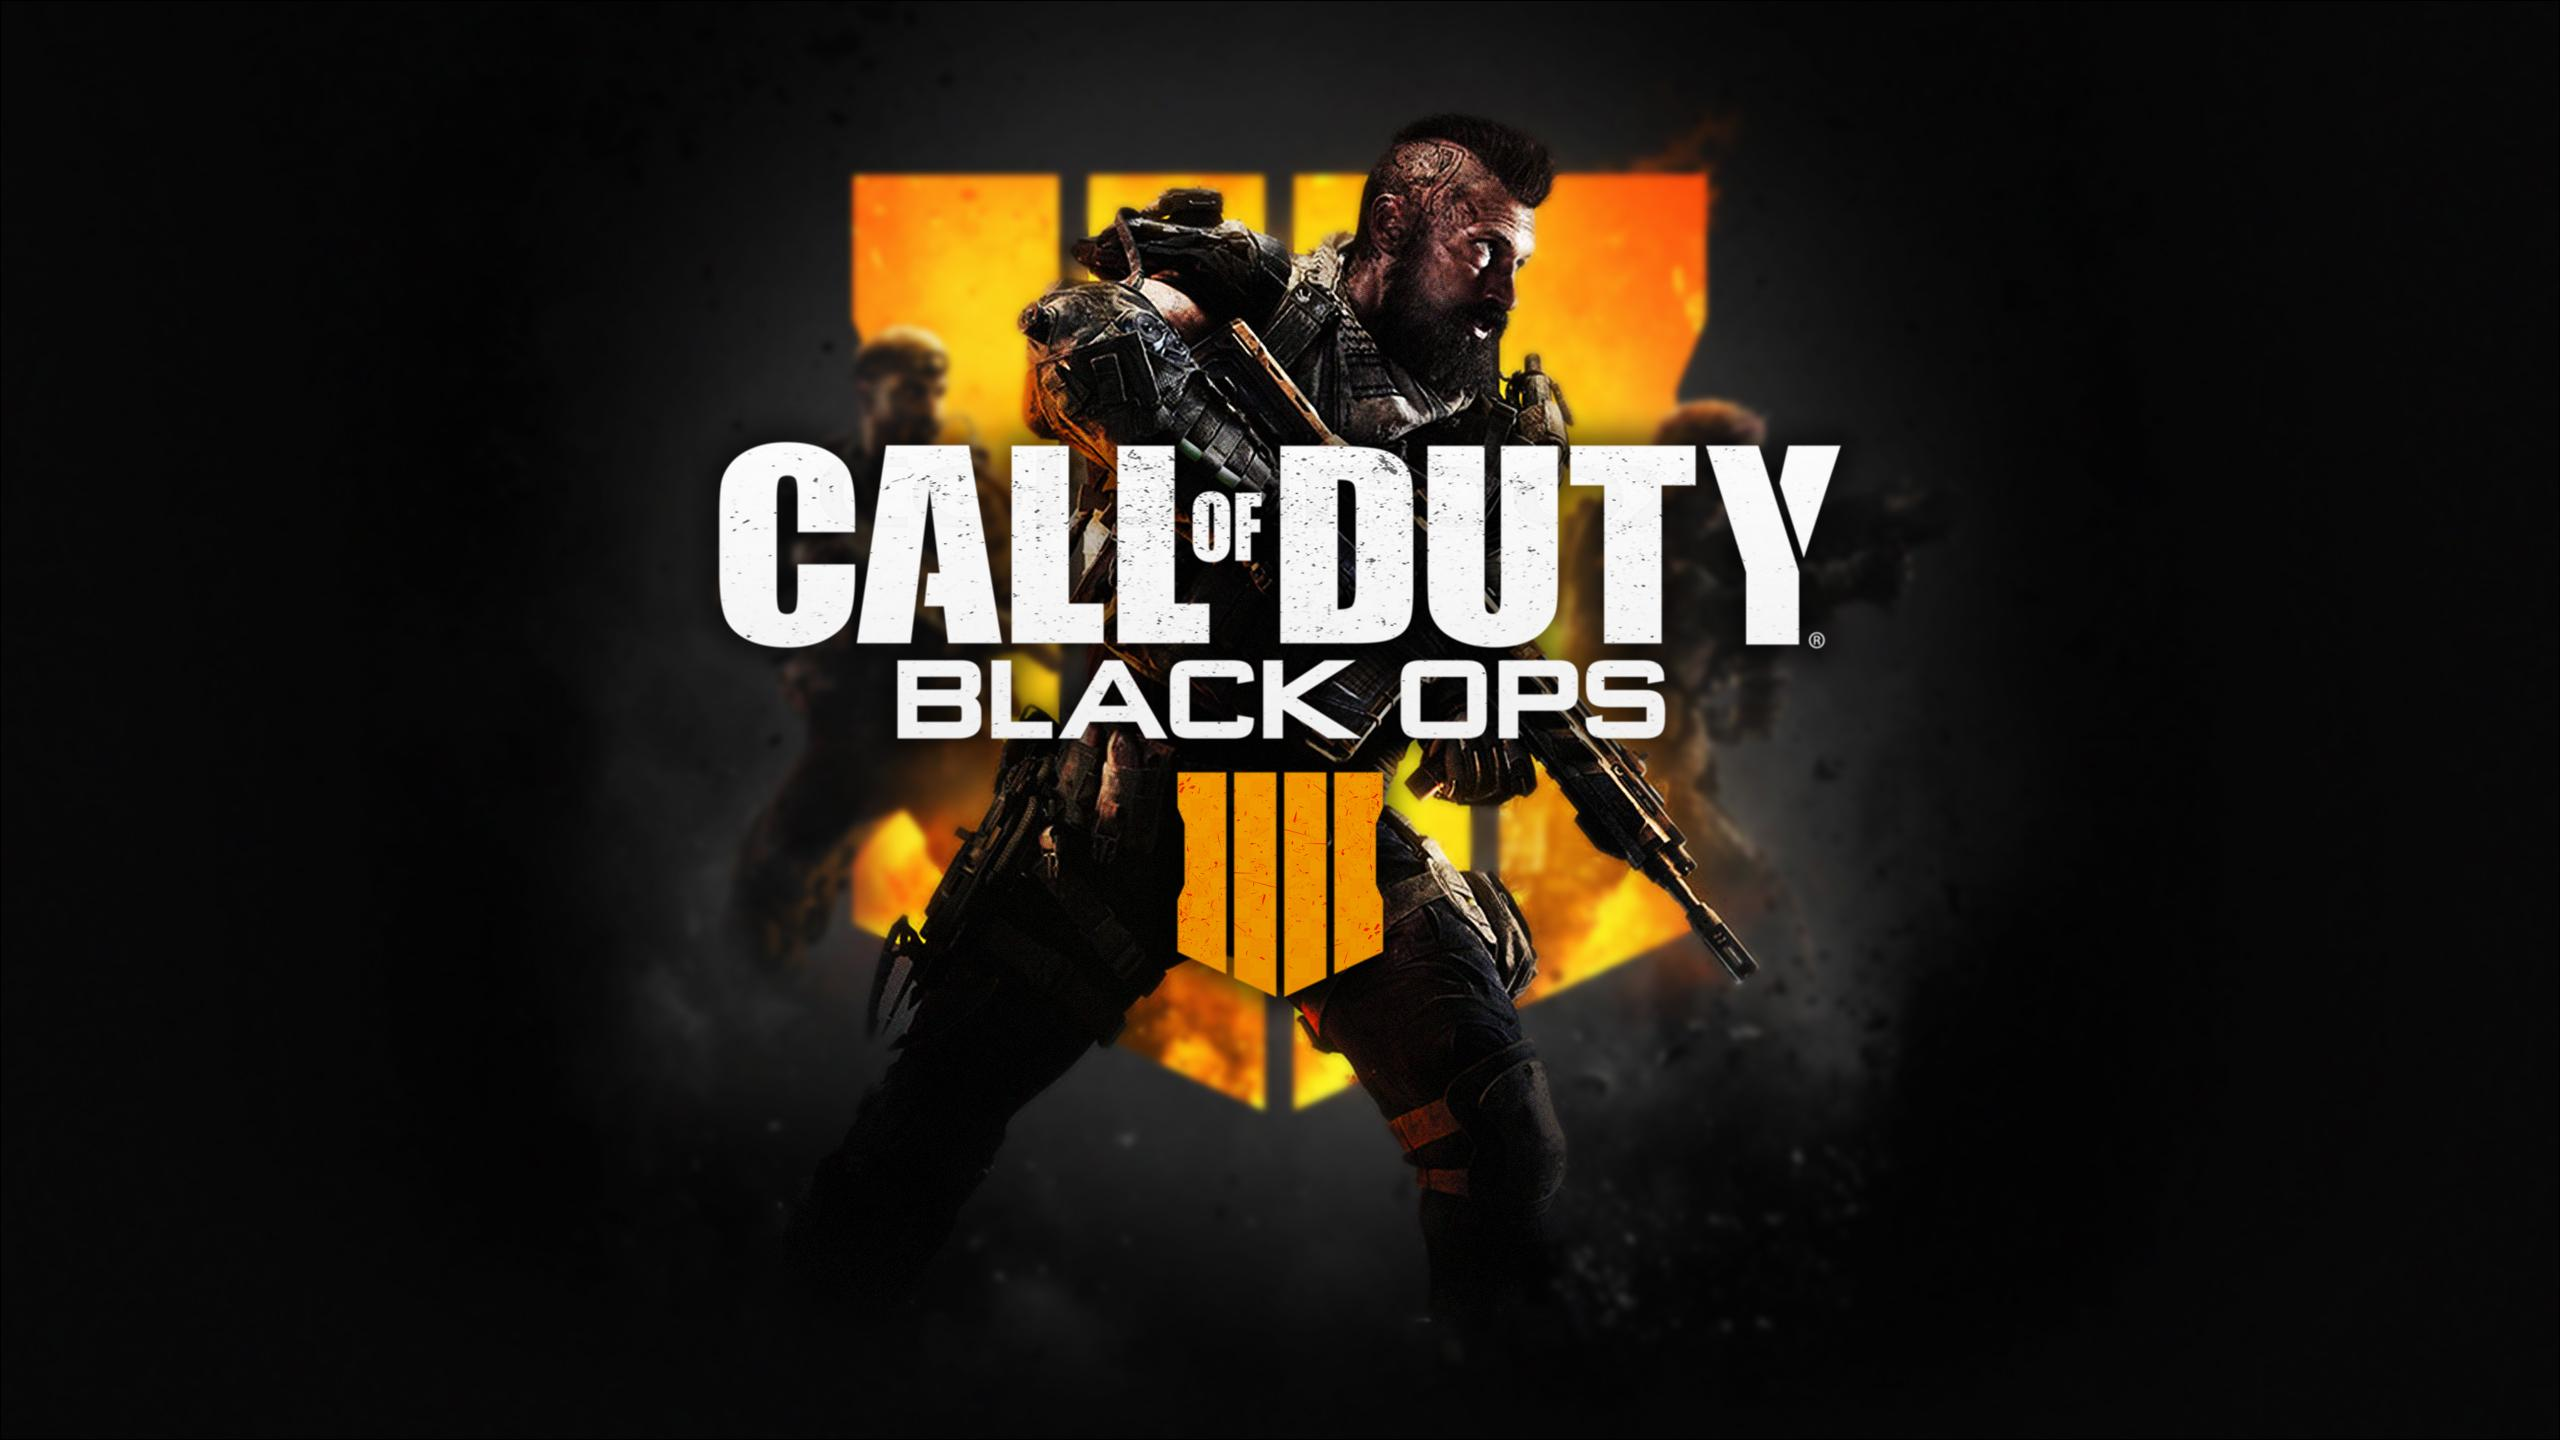 [Review] Call of Duty: Black Ops IIII